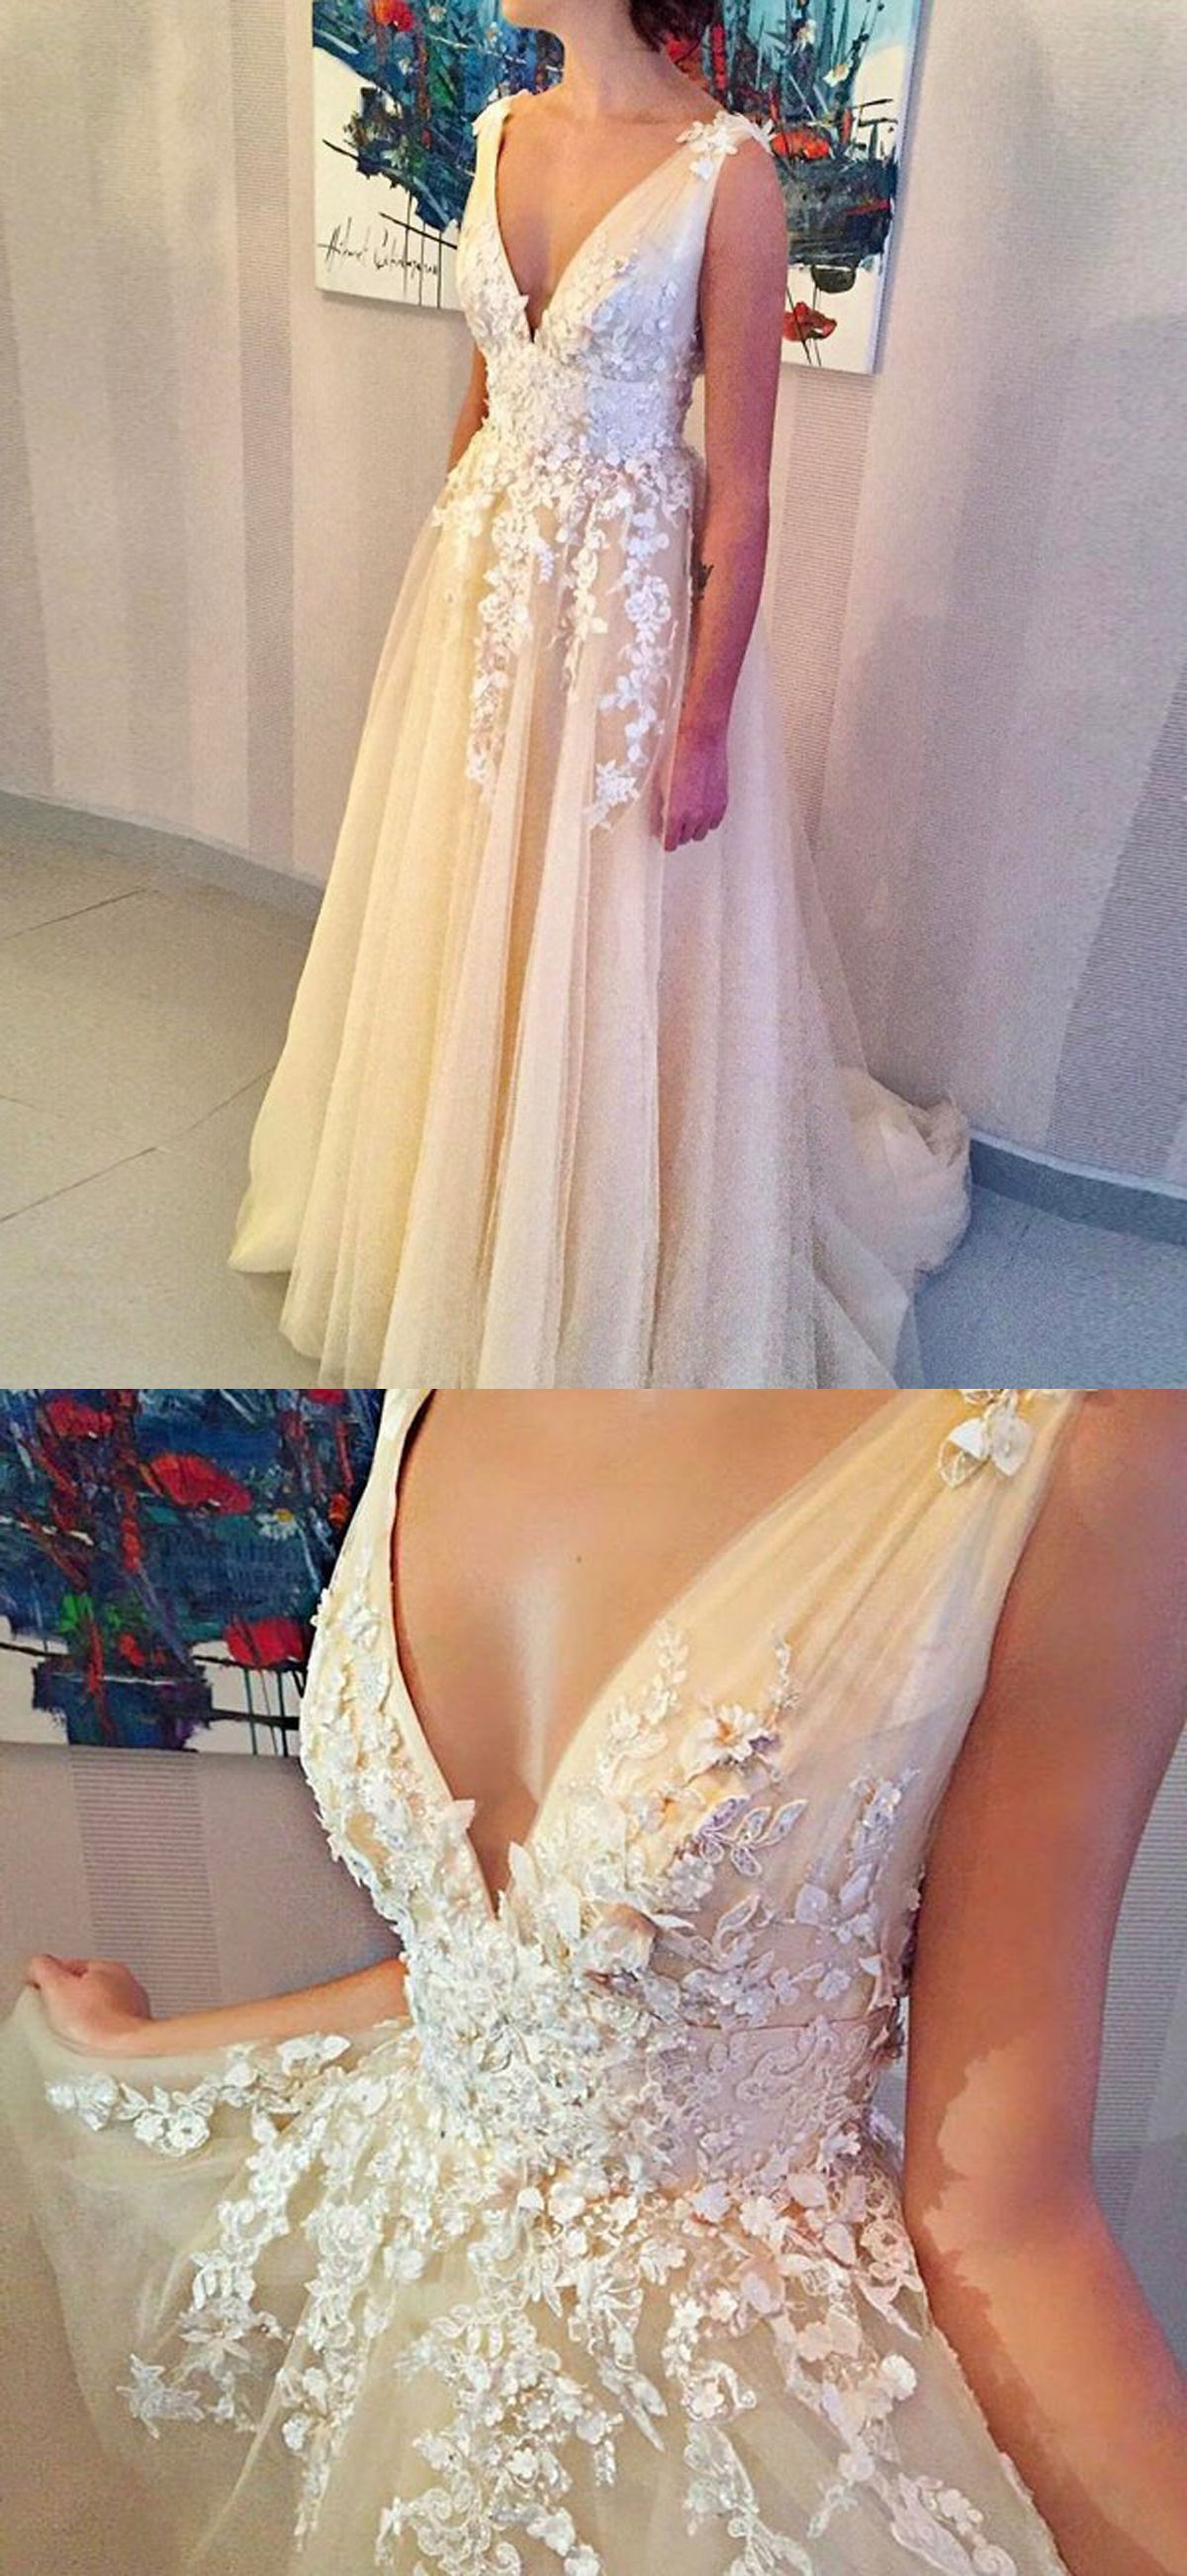 Egyptian wedding dresses  Pin by Debbie SB on Say Yes To The Dress  Pinterest  Champagne